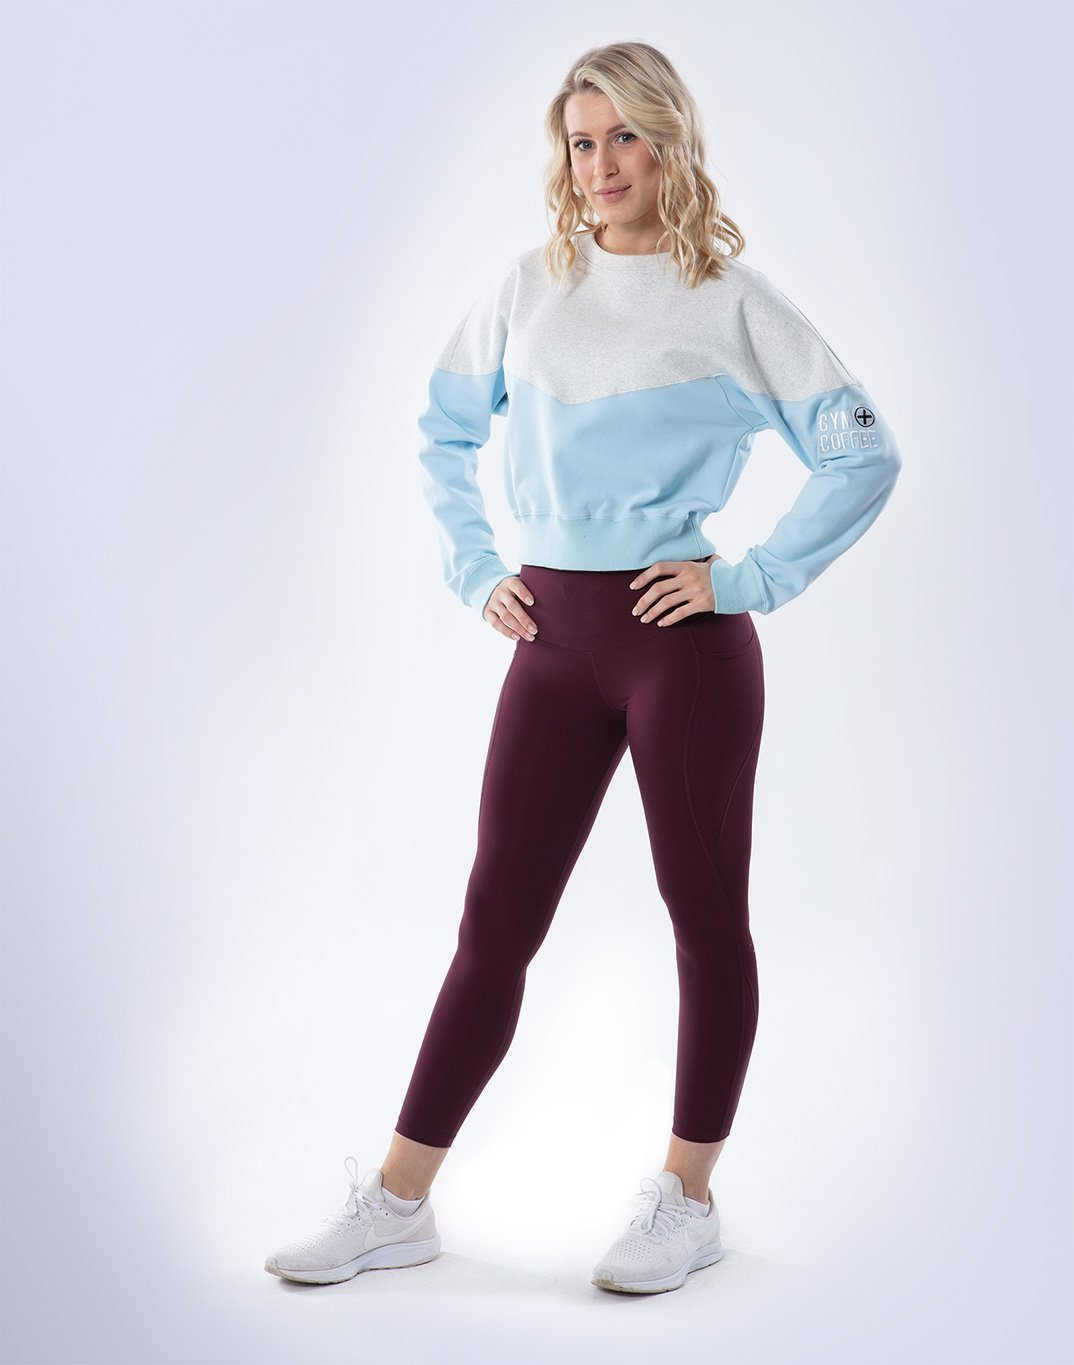 Gym Plus Coffee Long Sleeve Relax Crew in Cream/Baby Blue Designed in Ireland